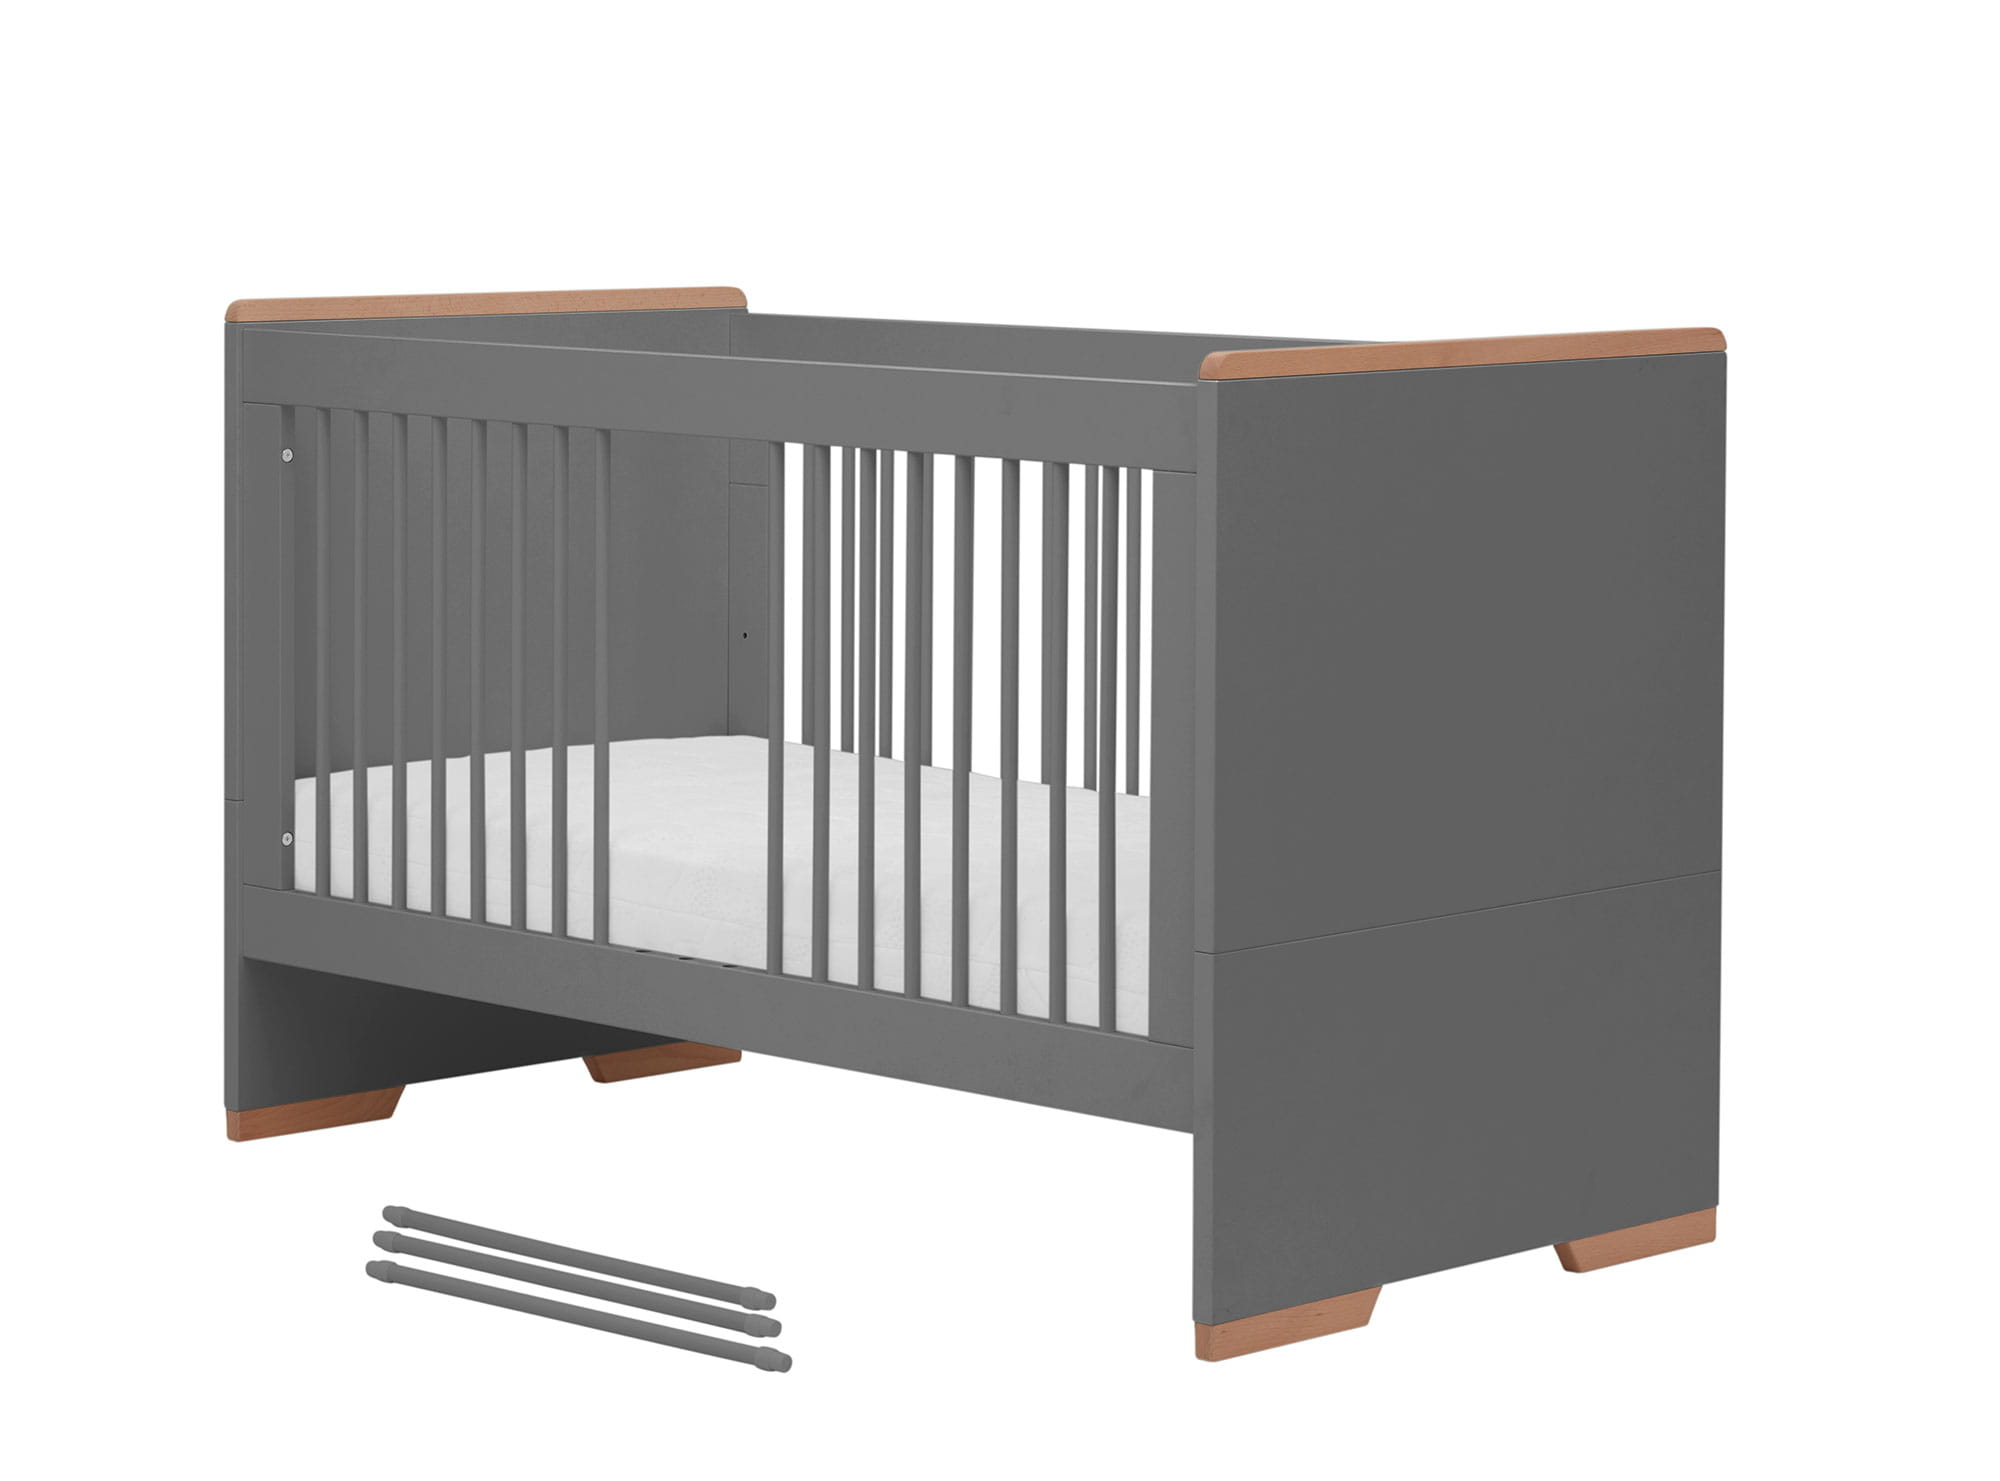 Snap_cot-bed140x70_dark_grey_3.jpg